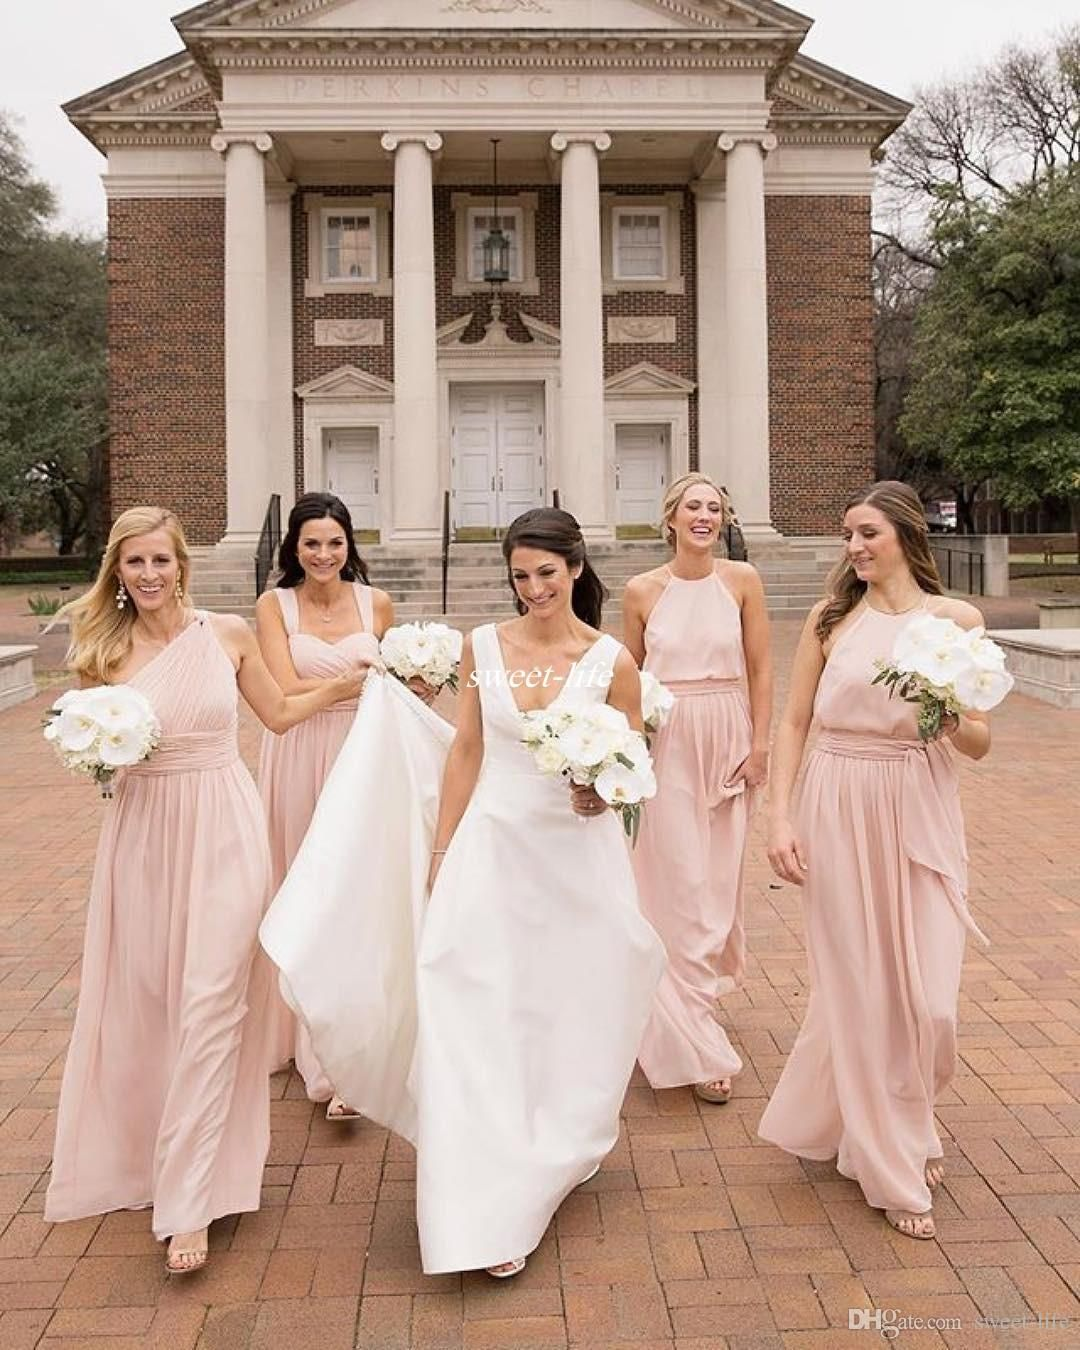 Mix match country wedding pink bridesmaid dresses a line chiffon mix match country wedding pink bridesmaid dresses a line chiffon halter neck 2017 cheap formal maid of honor party dresses gowns for guest ombrellifo Images